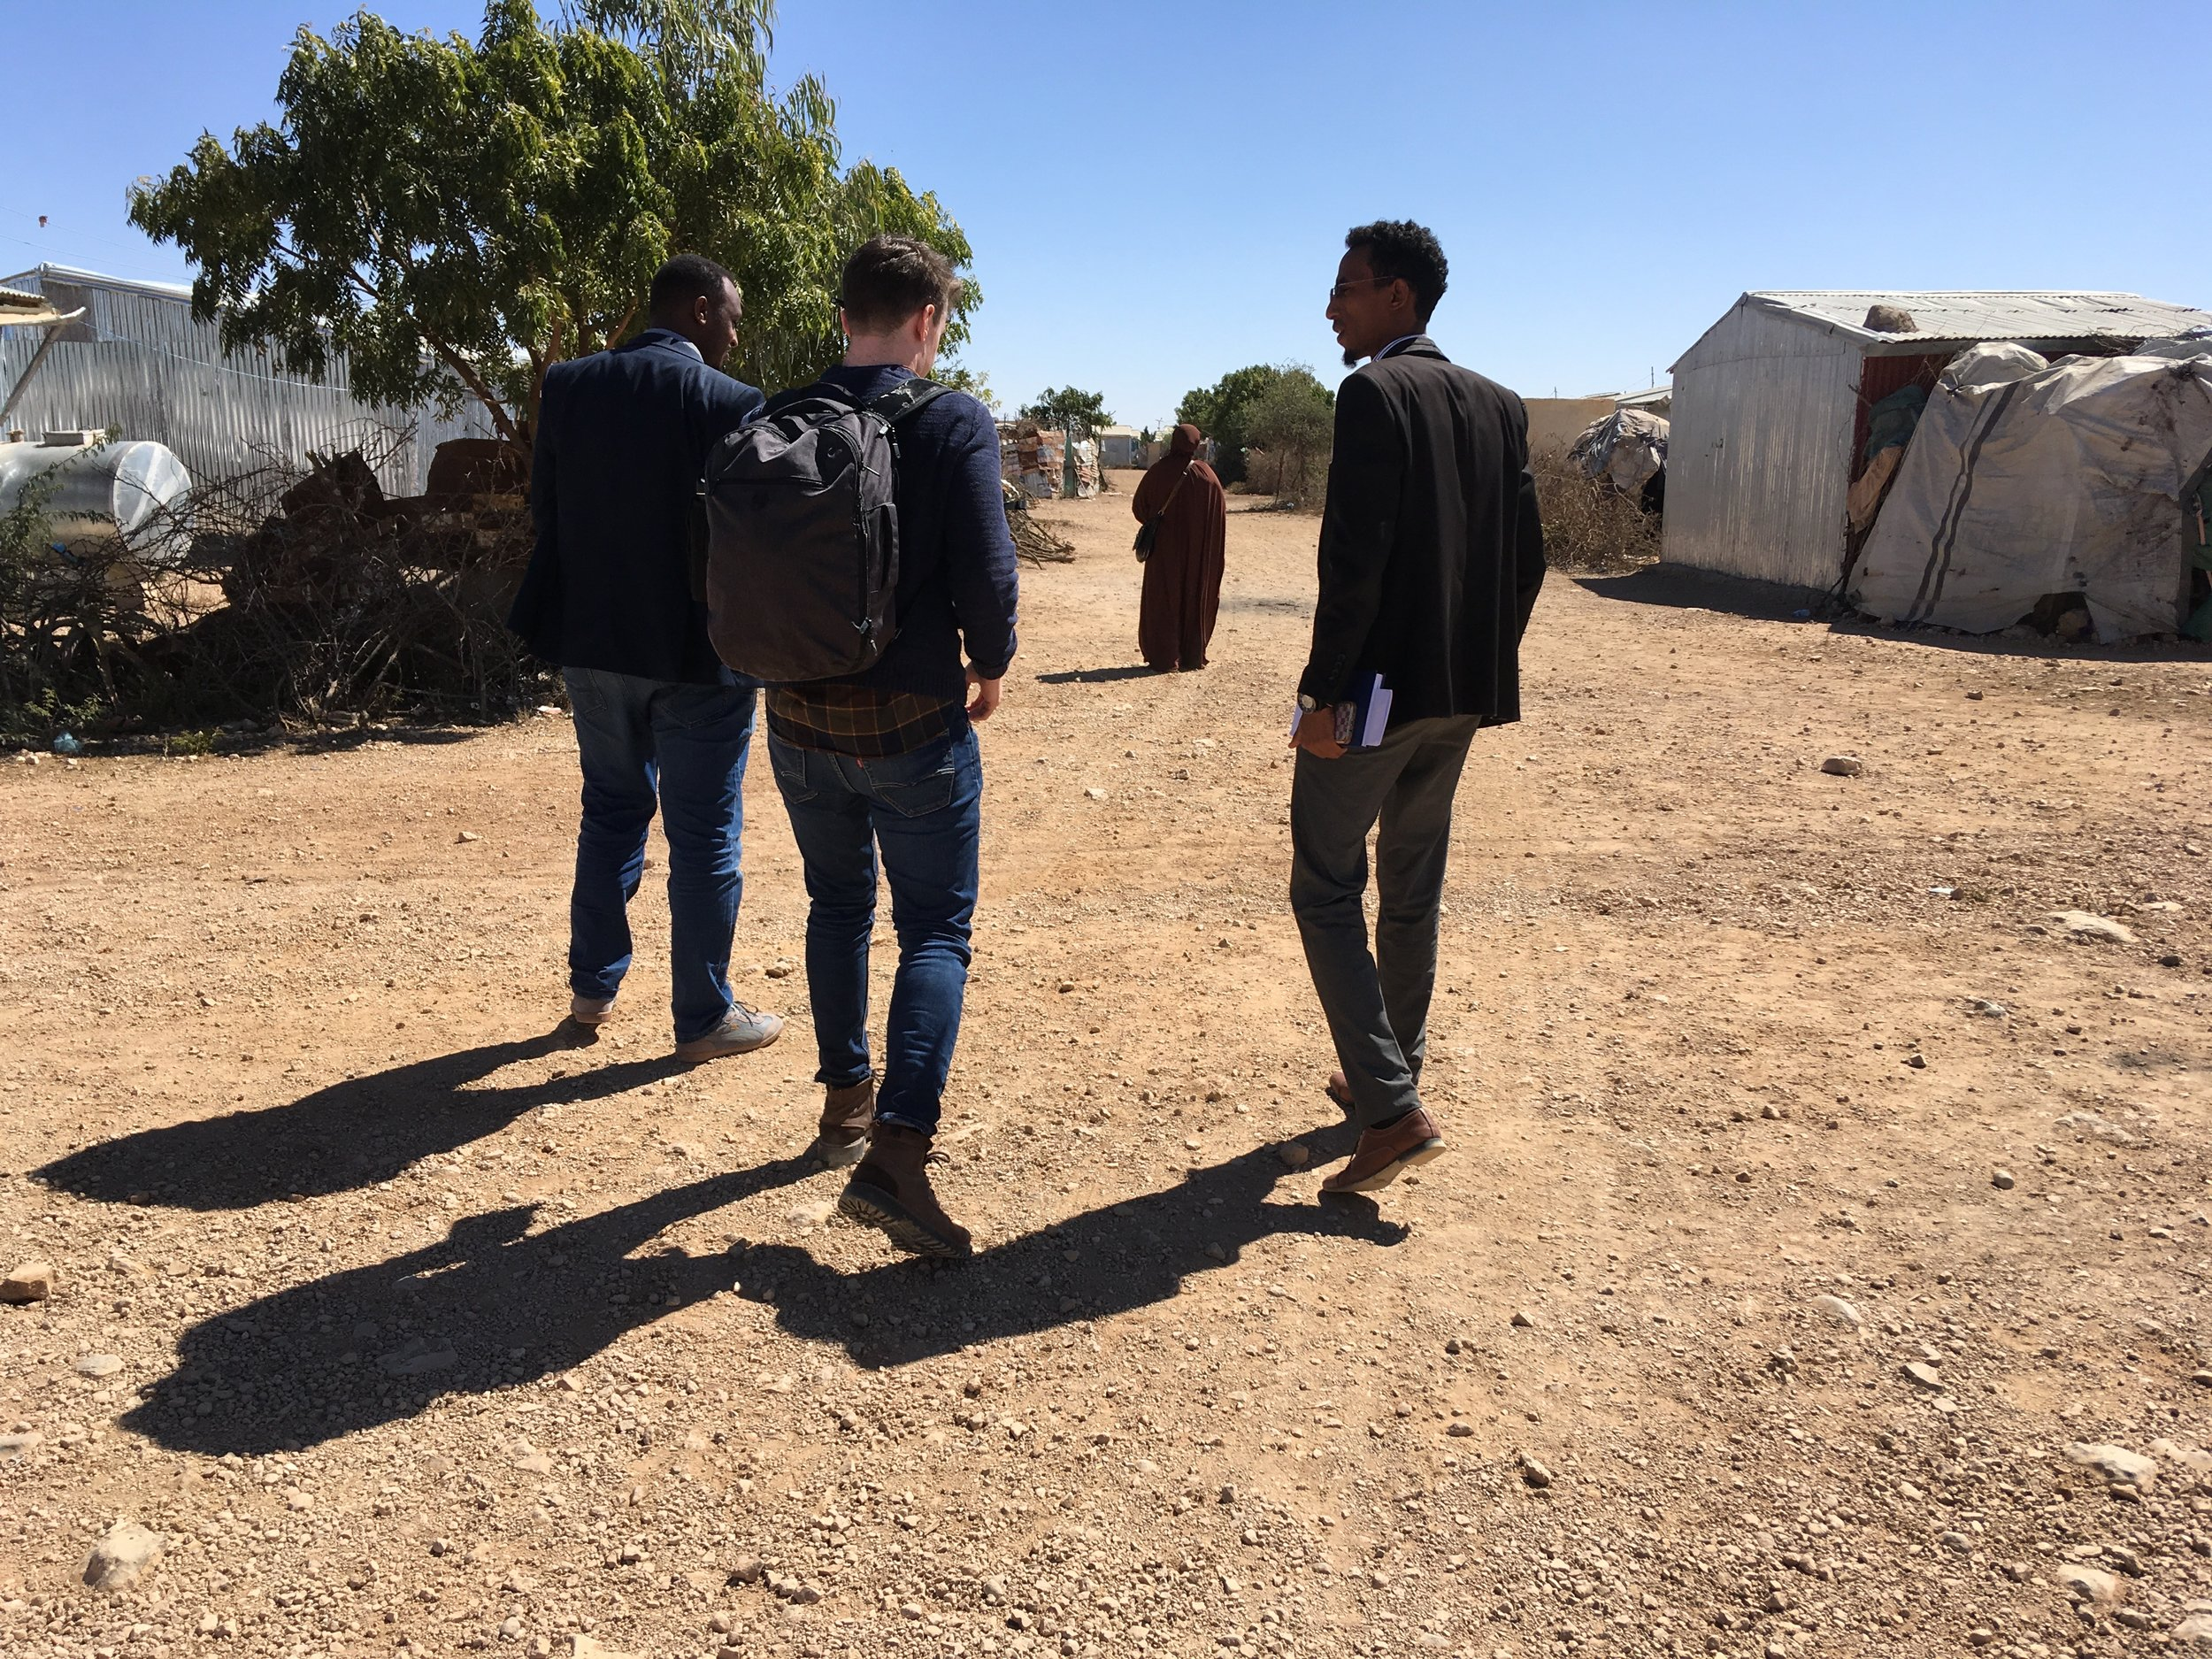 Project 'Breaking the 4th Wall of Climate Migration' - Somaliland, January 2019